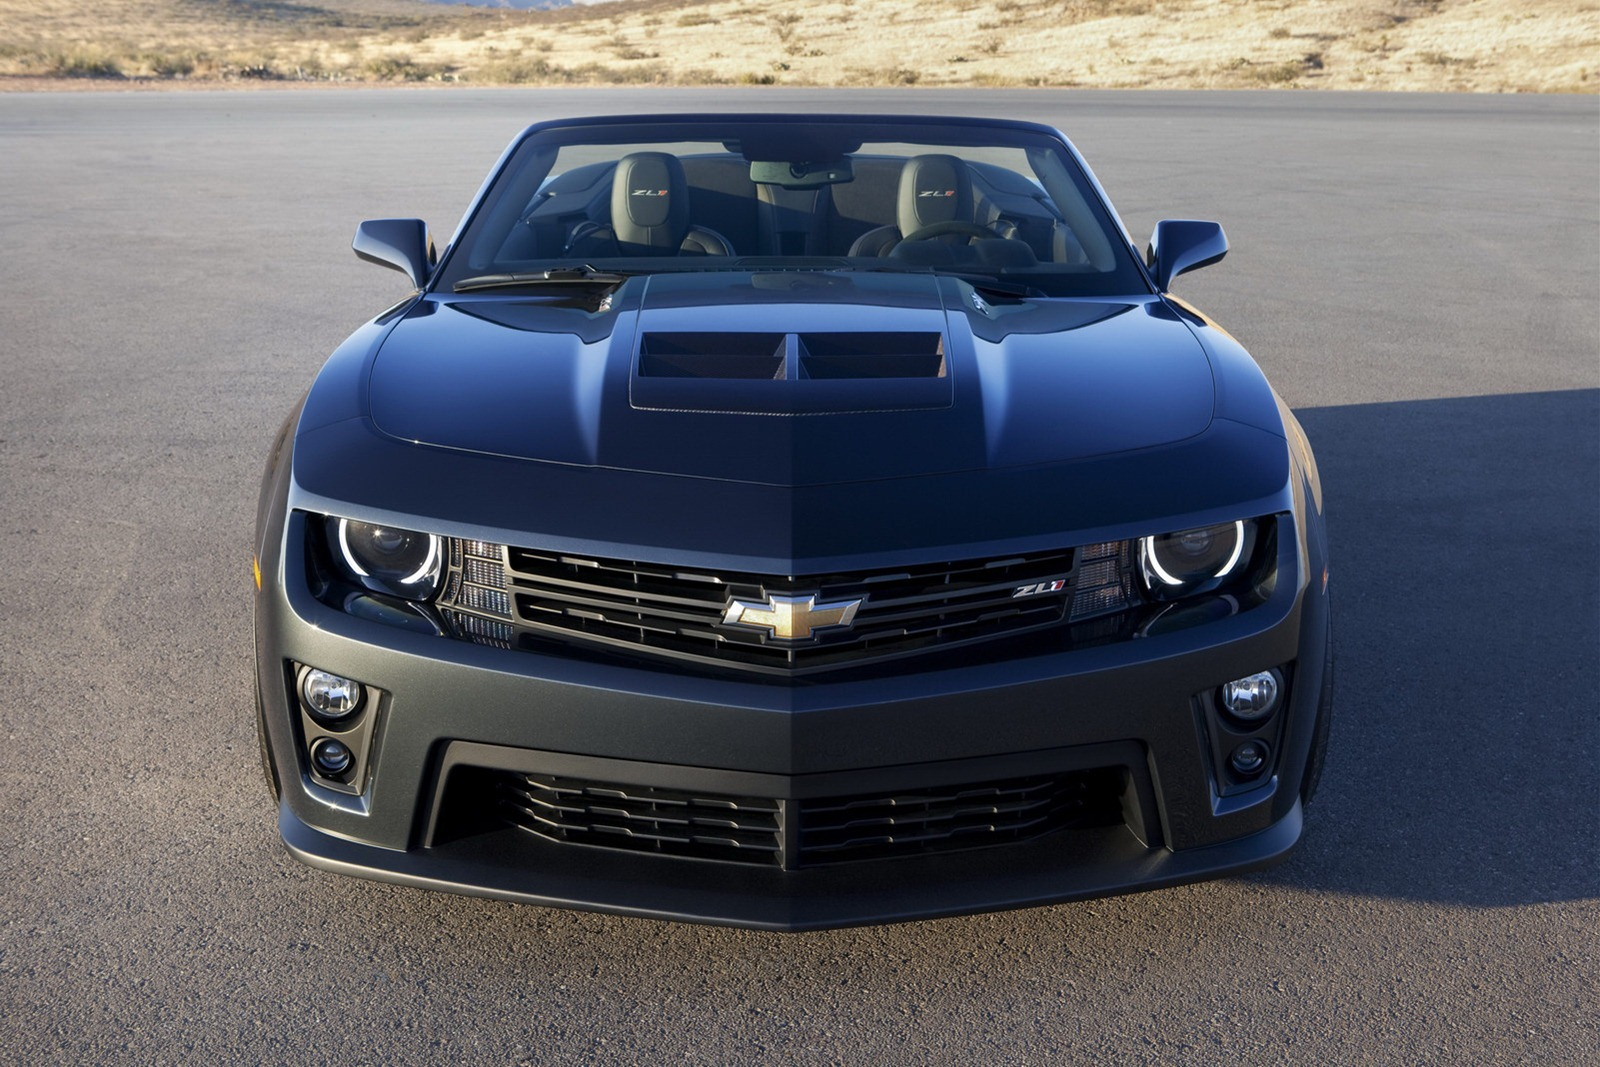 New 2013 Chevrolet Camaro ZL1 Convertible Carries a Base Price of